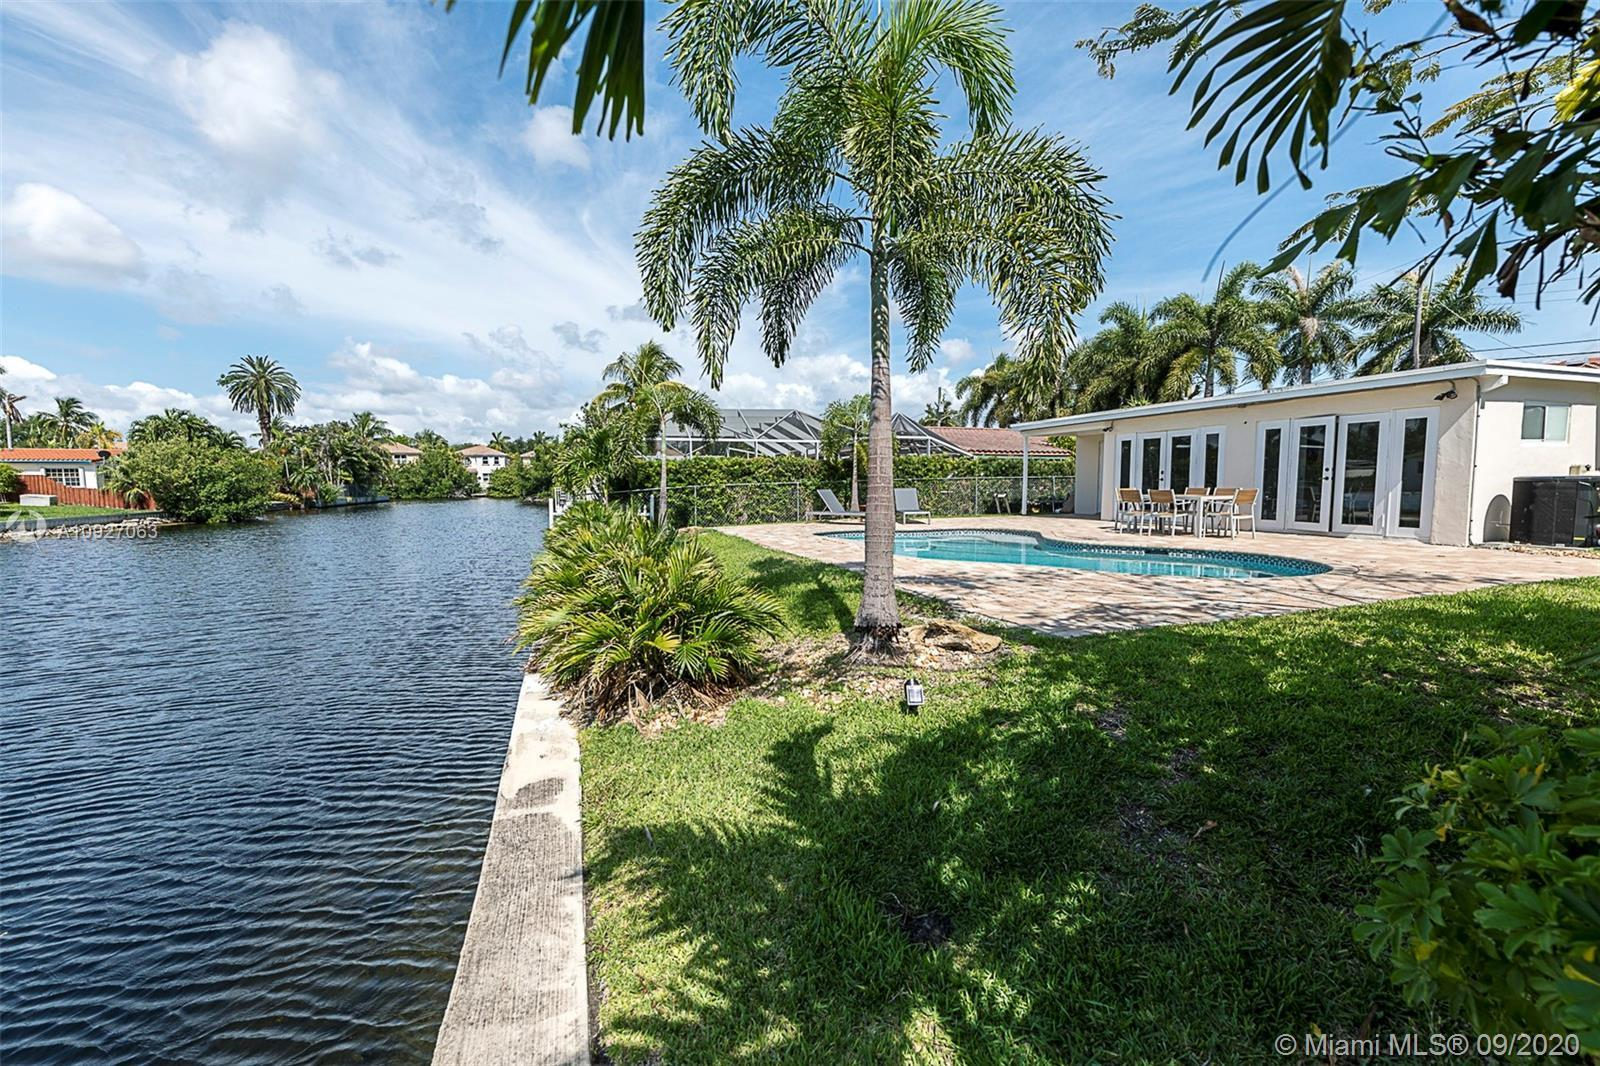 WATERFRONT HOUSE, completely updated, immaculate 5 bedrooms, 3 bathrooms home. Great backyard with h